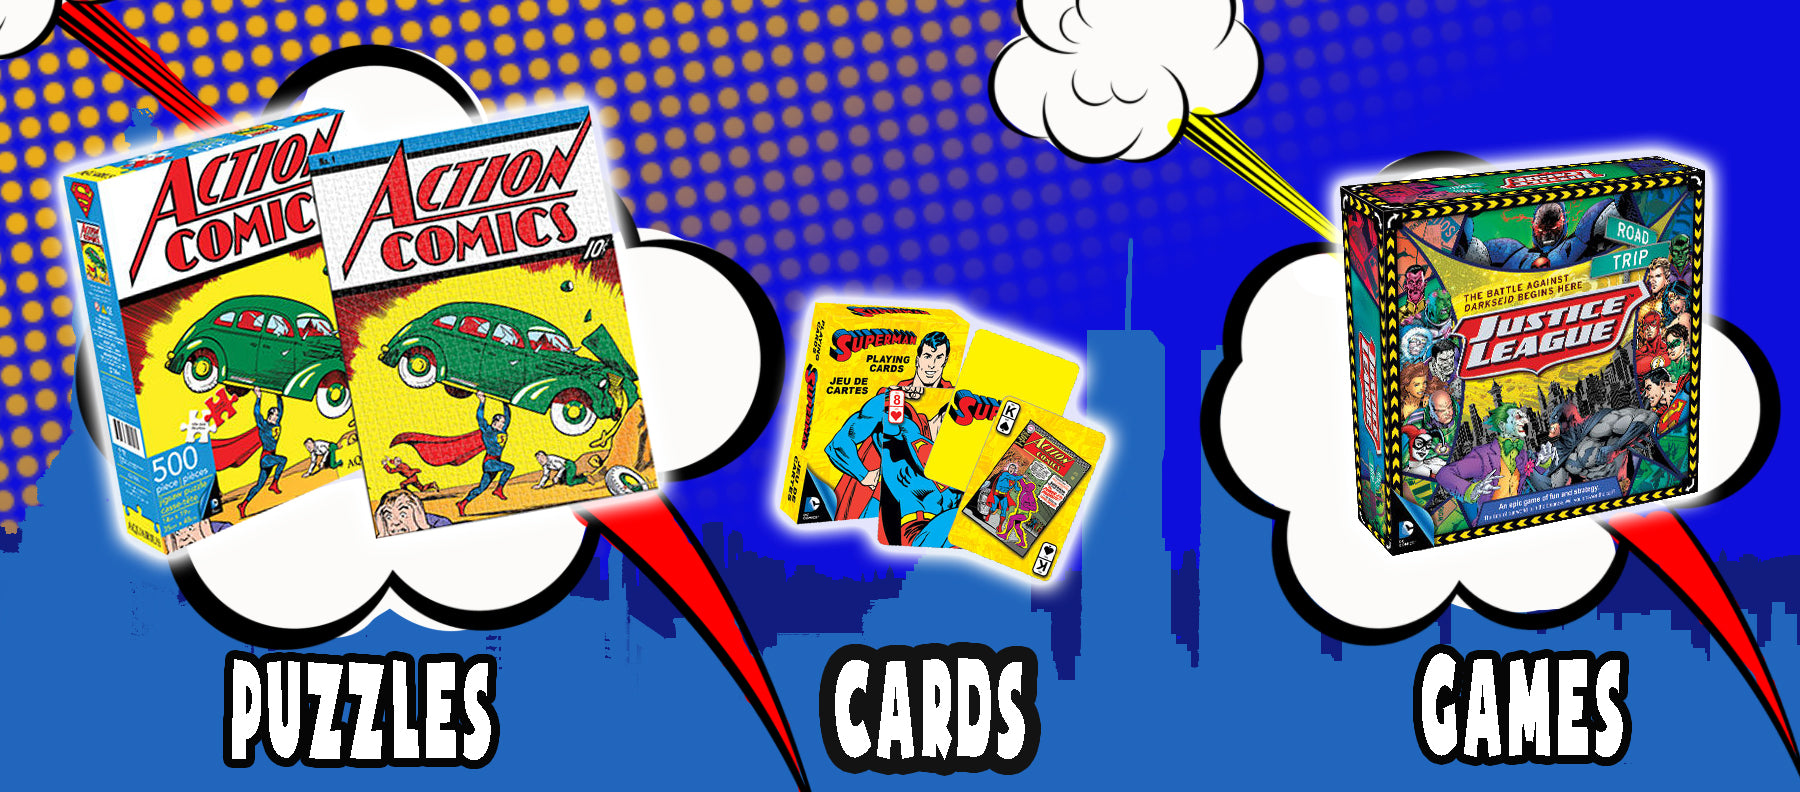 puzzles-cards-and-games.jpg